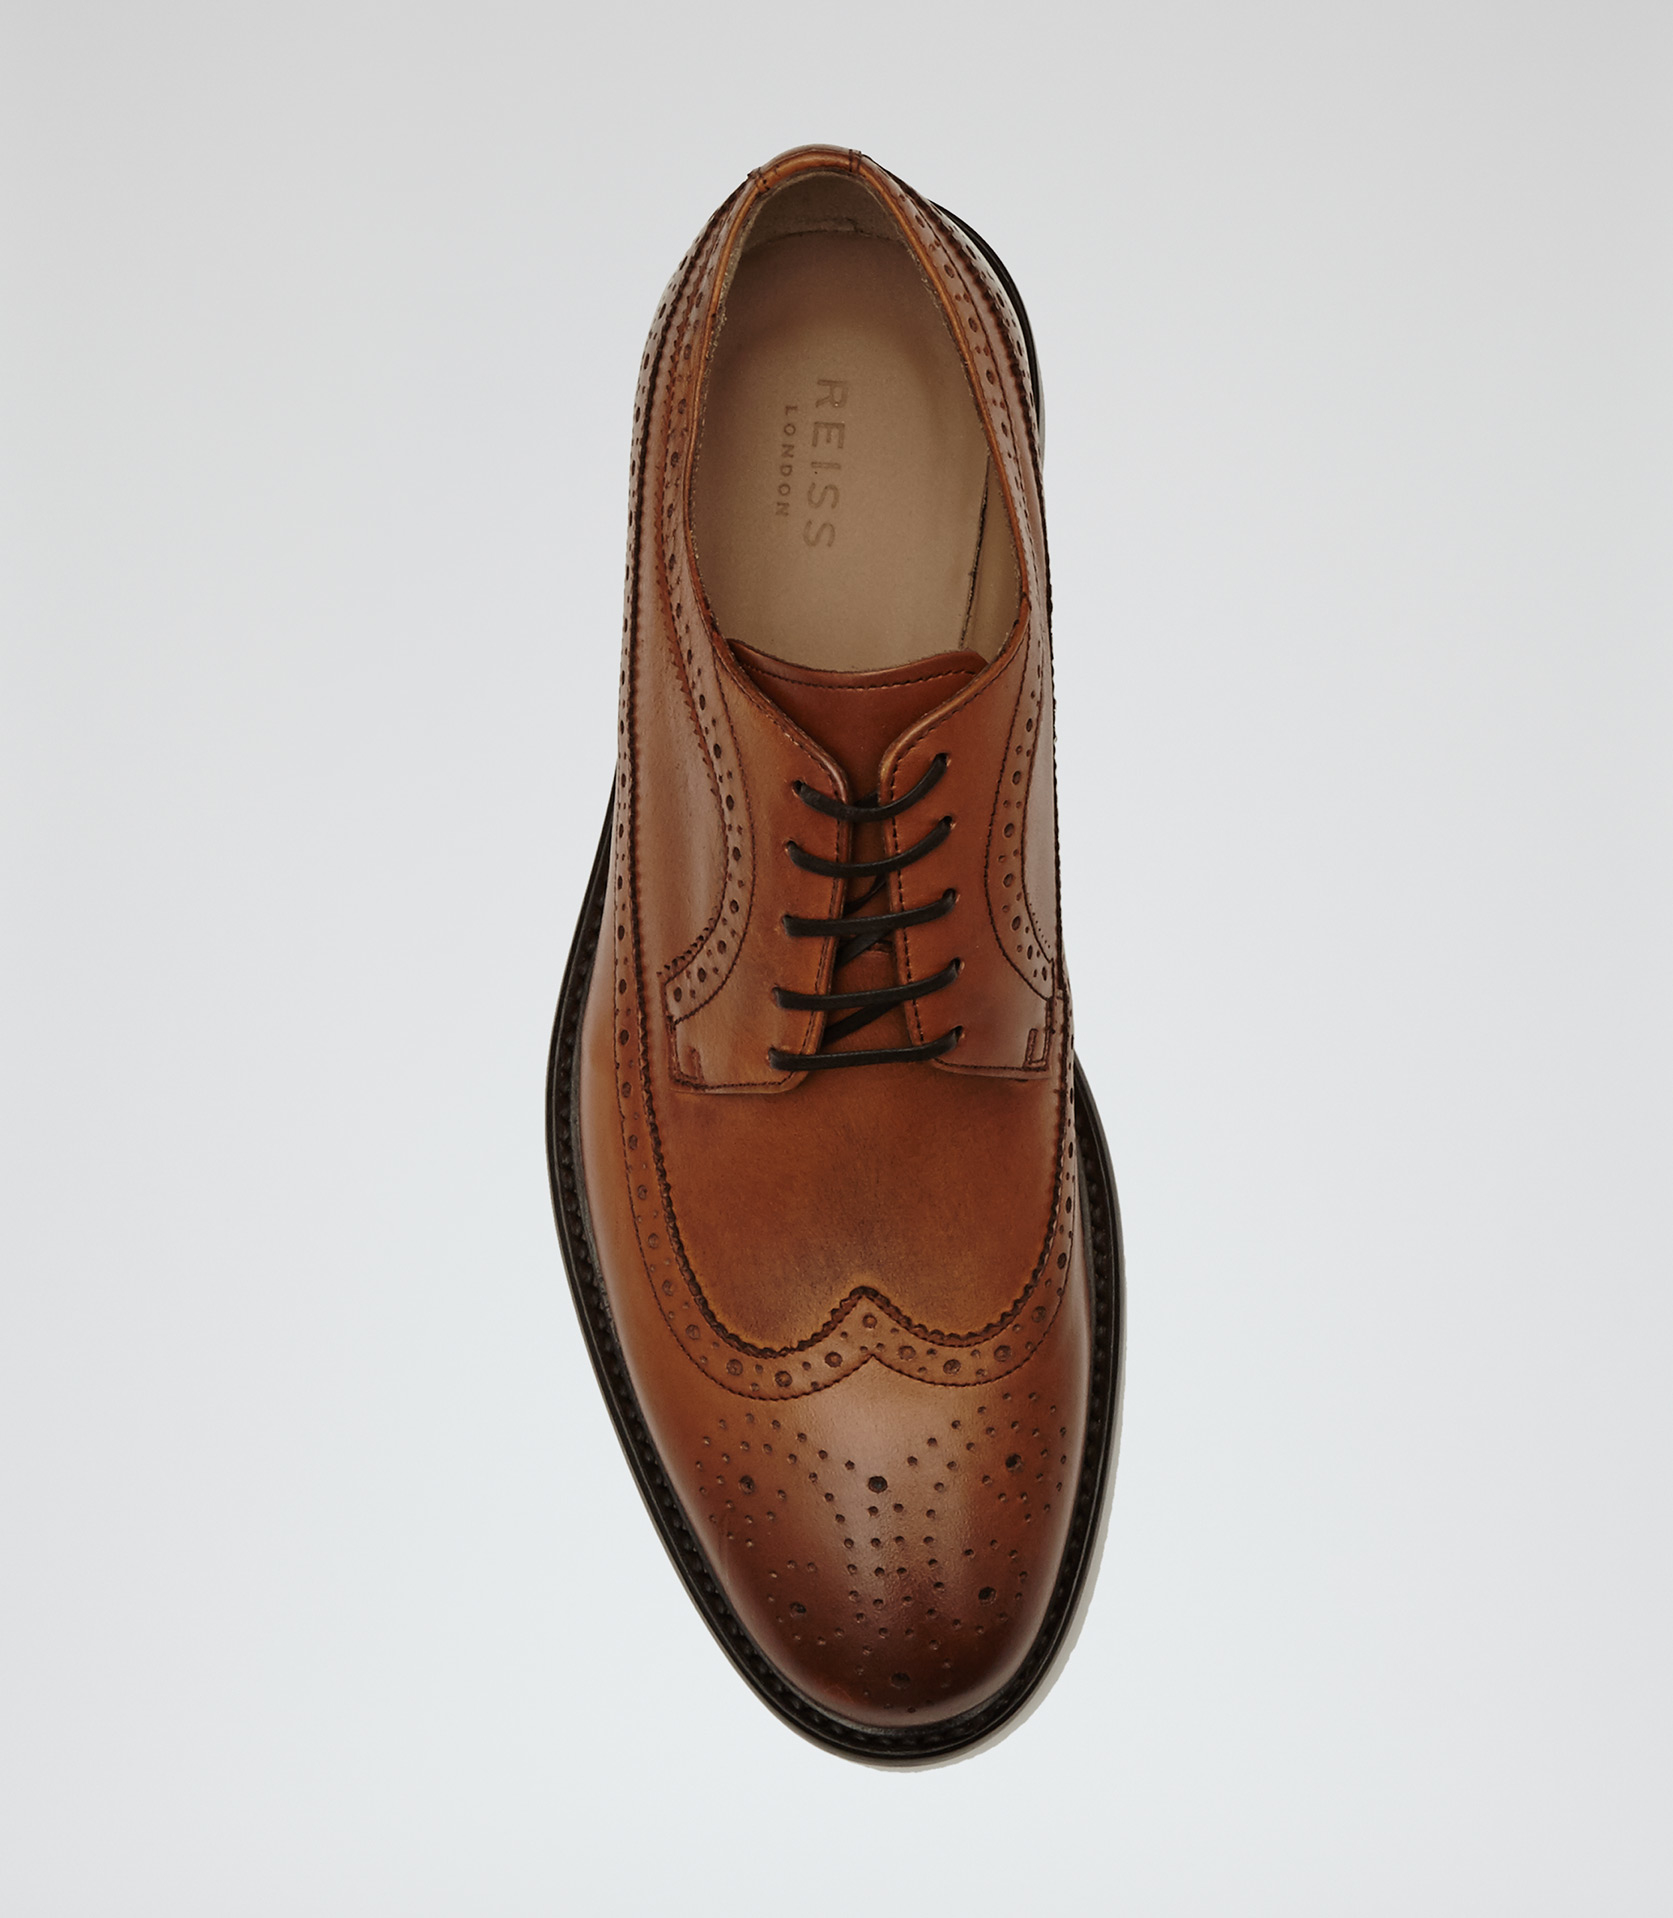 Reiss Ash Longwing Leather Brogues in Tan (Brown) for Men